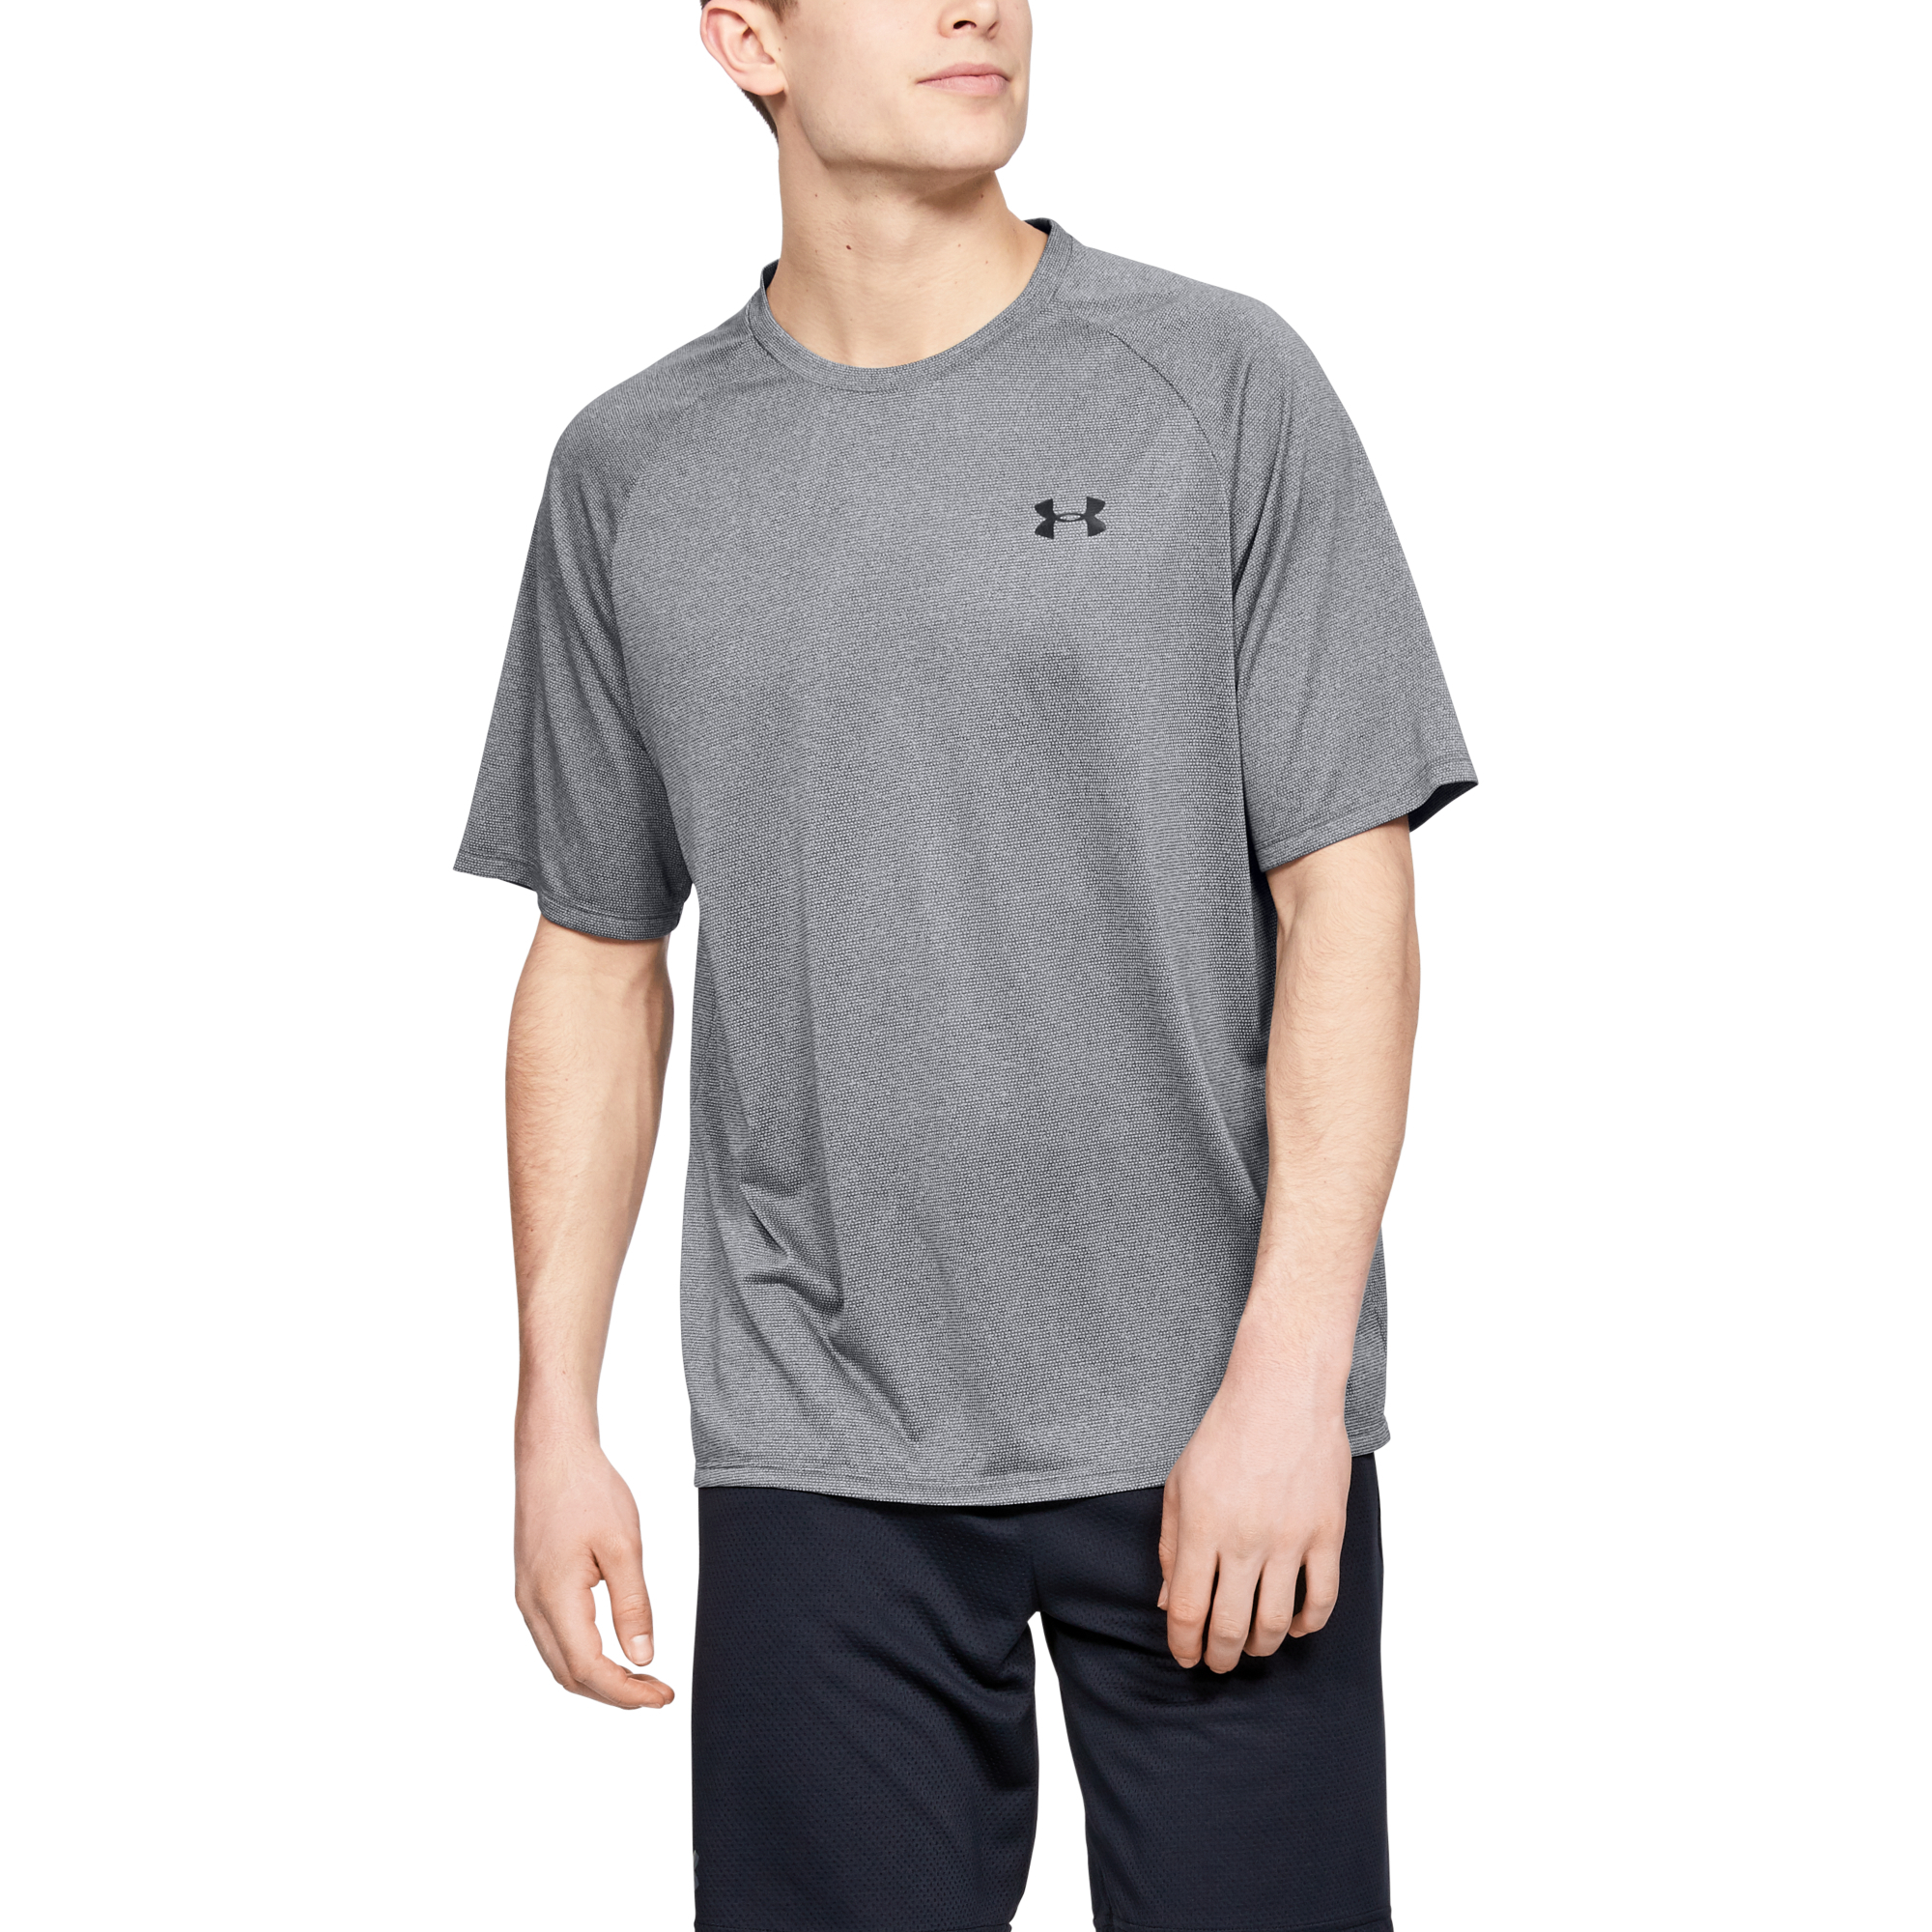 Under Armour Tech 2.0 SS Tee Novelty Pitch Gray/ Black EUR S